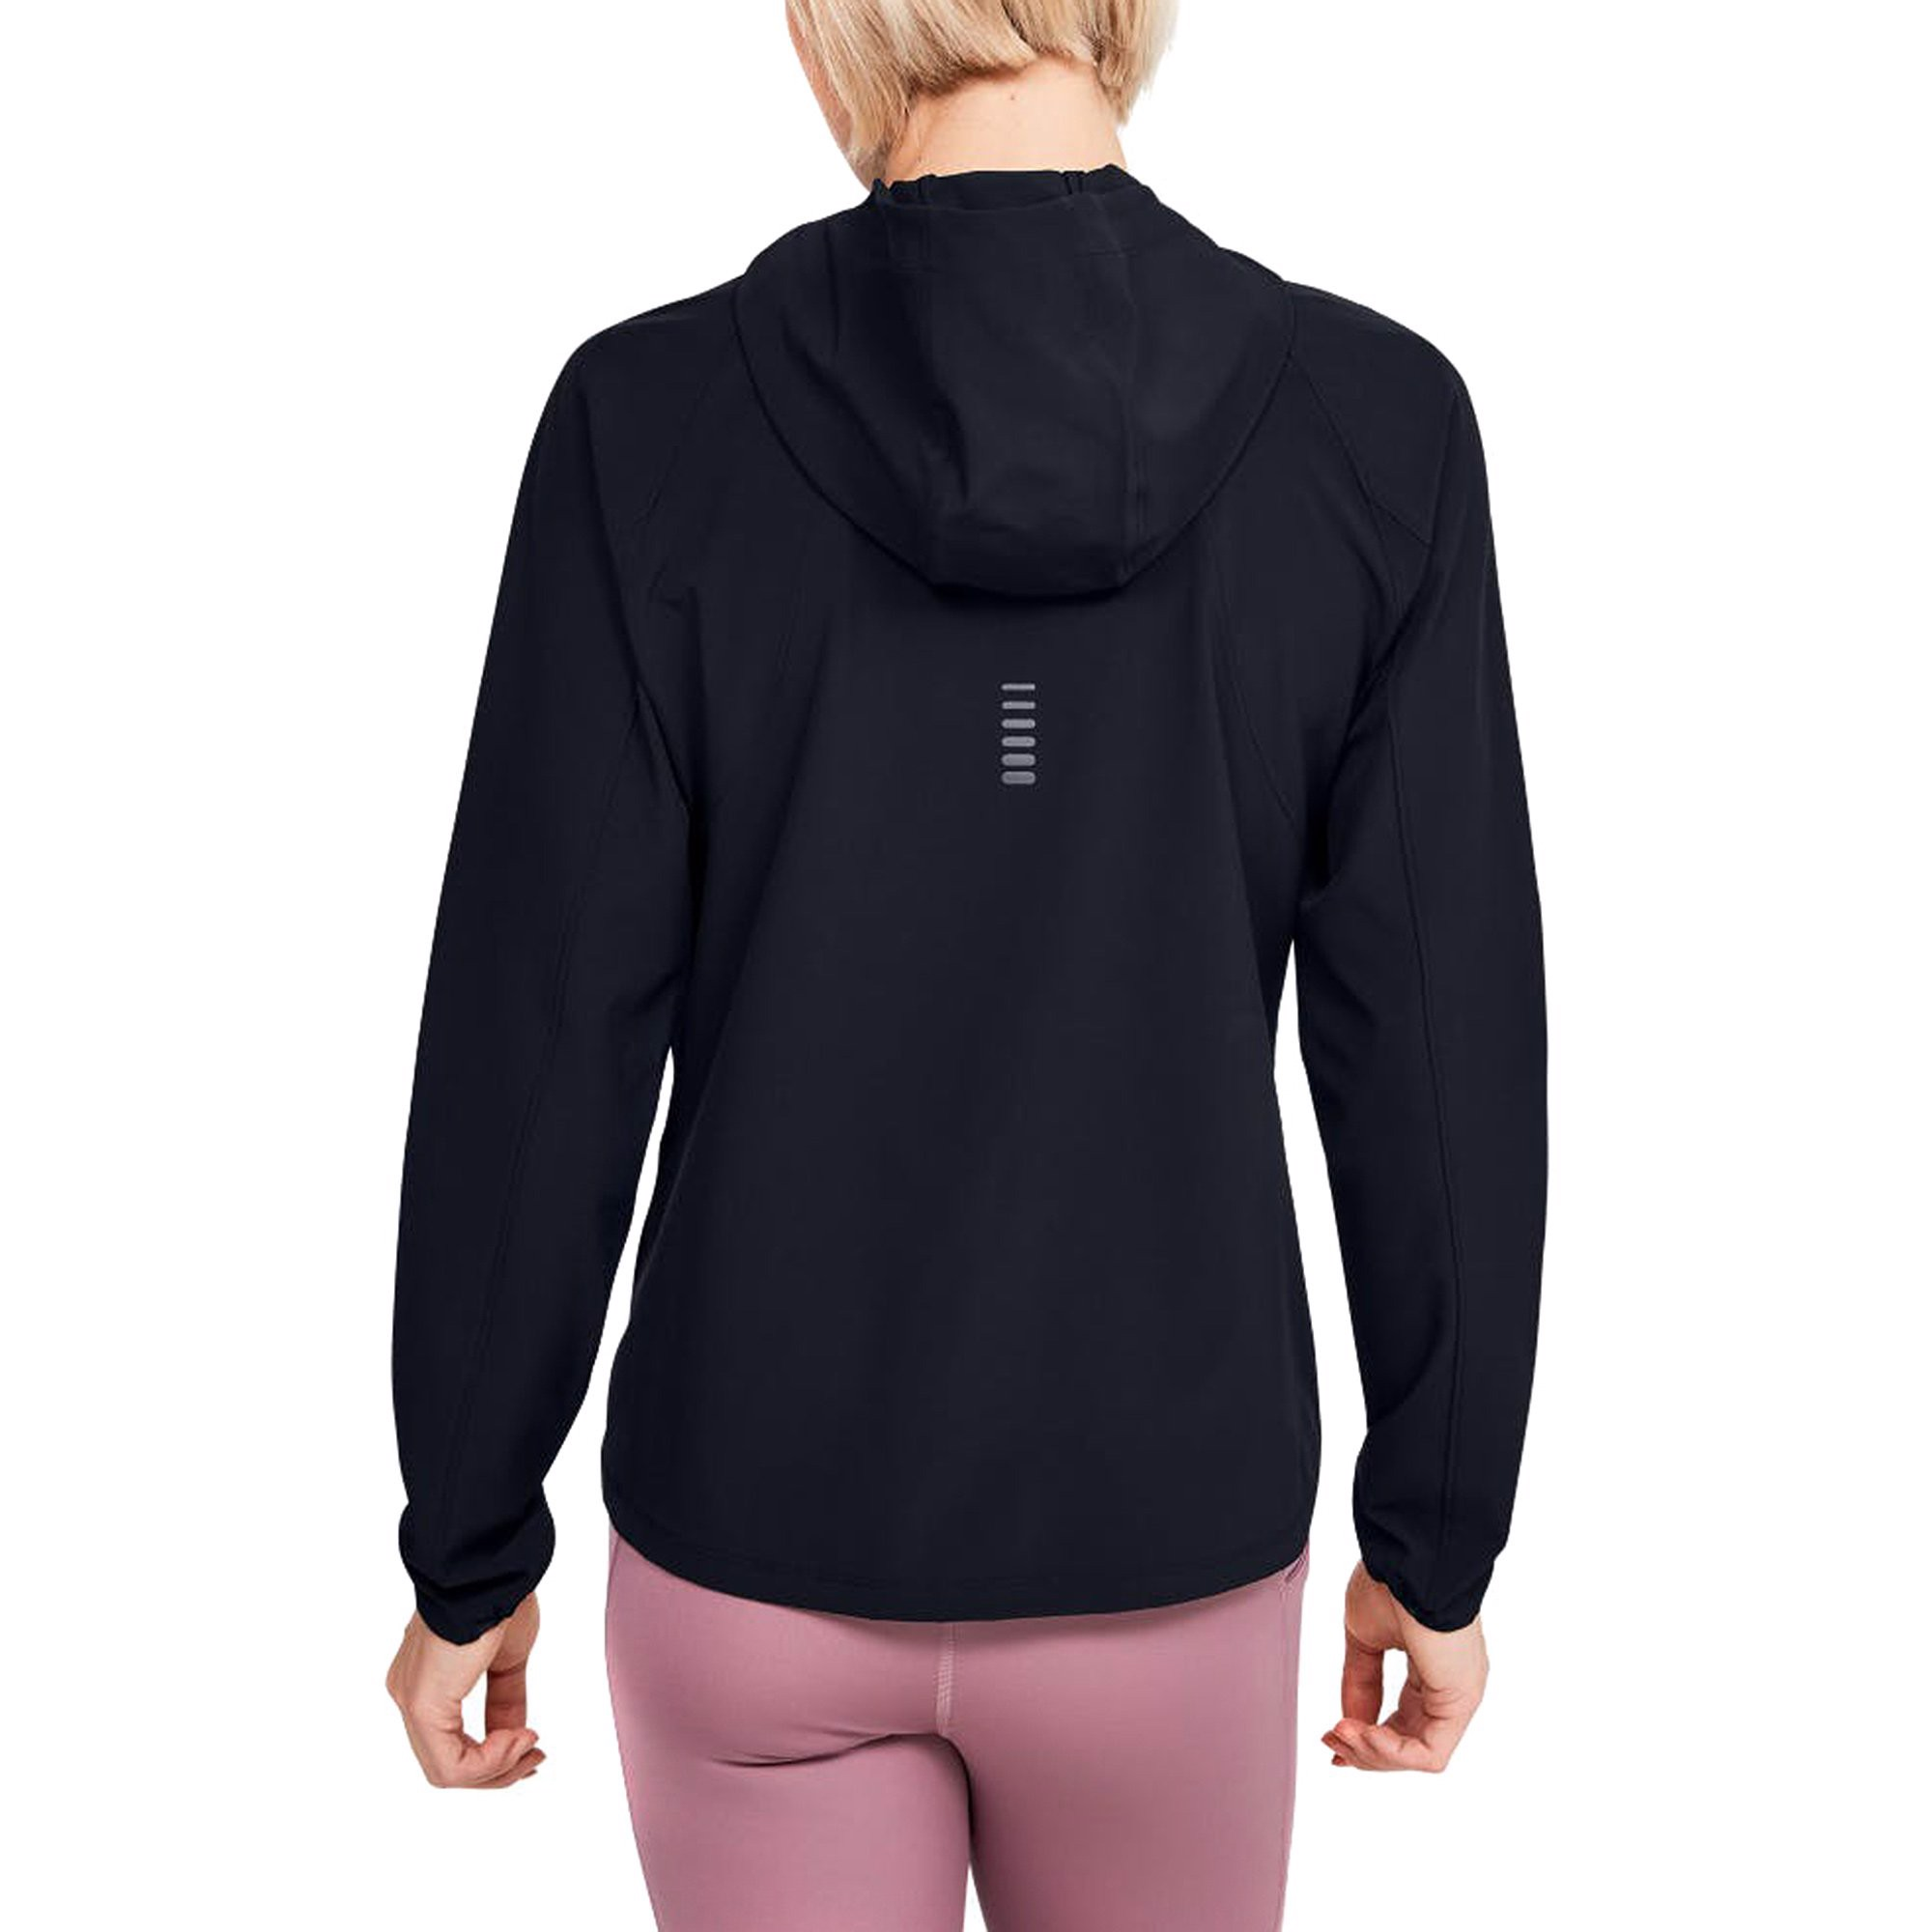 Under Armour - Áo khoác nữ Qualifier Outrun The Storm Jacket Running SS21-1350